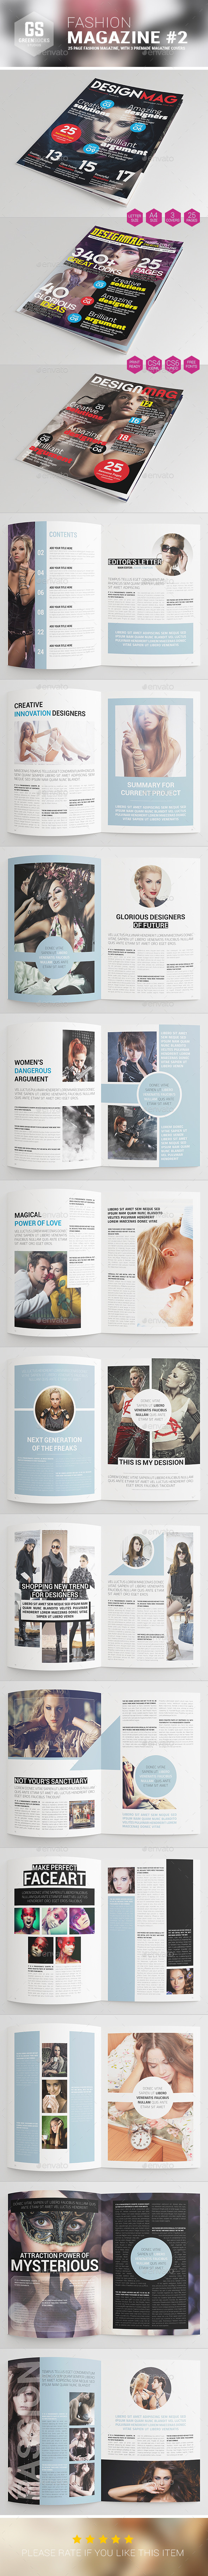 Fashion Magazine #2 - Magazines Print Templates